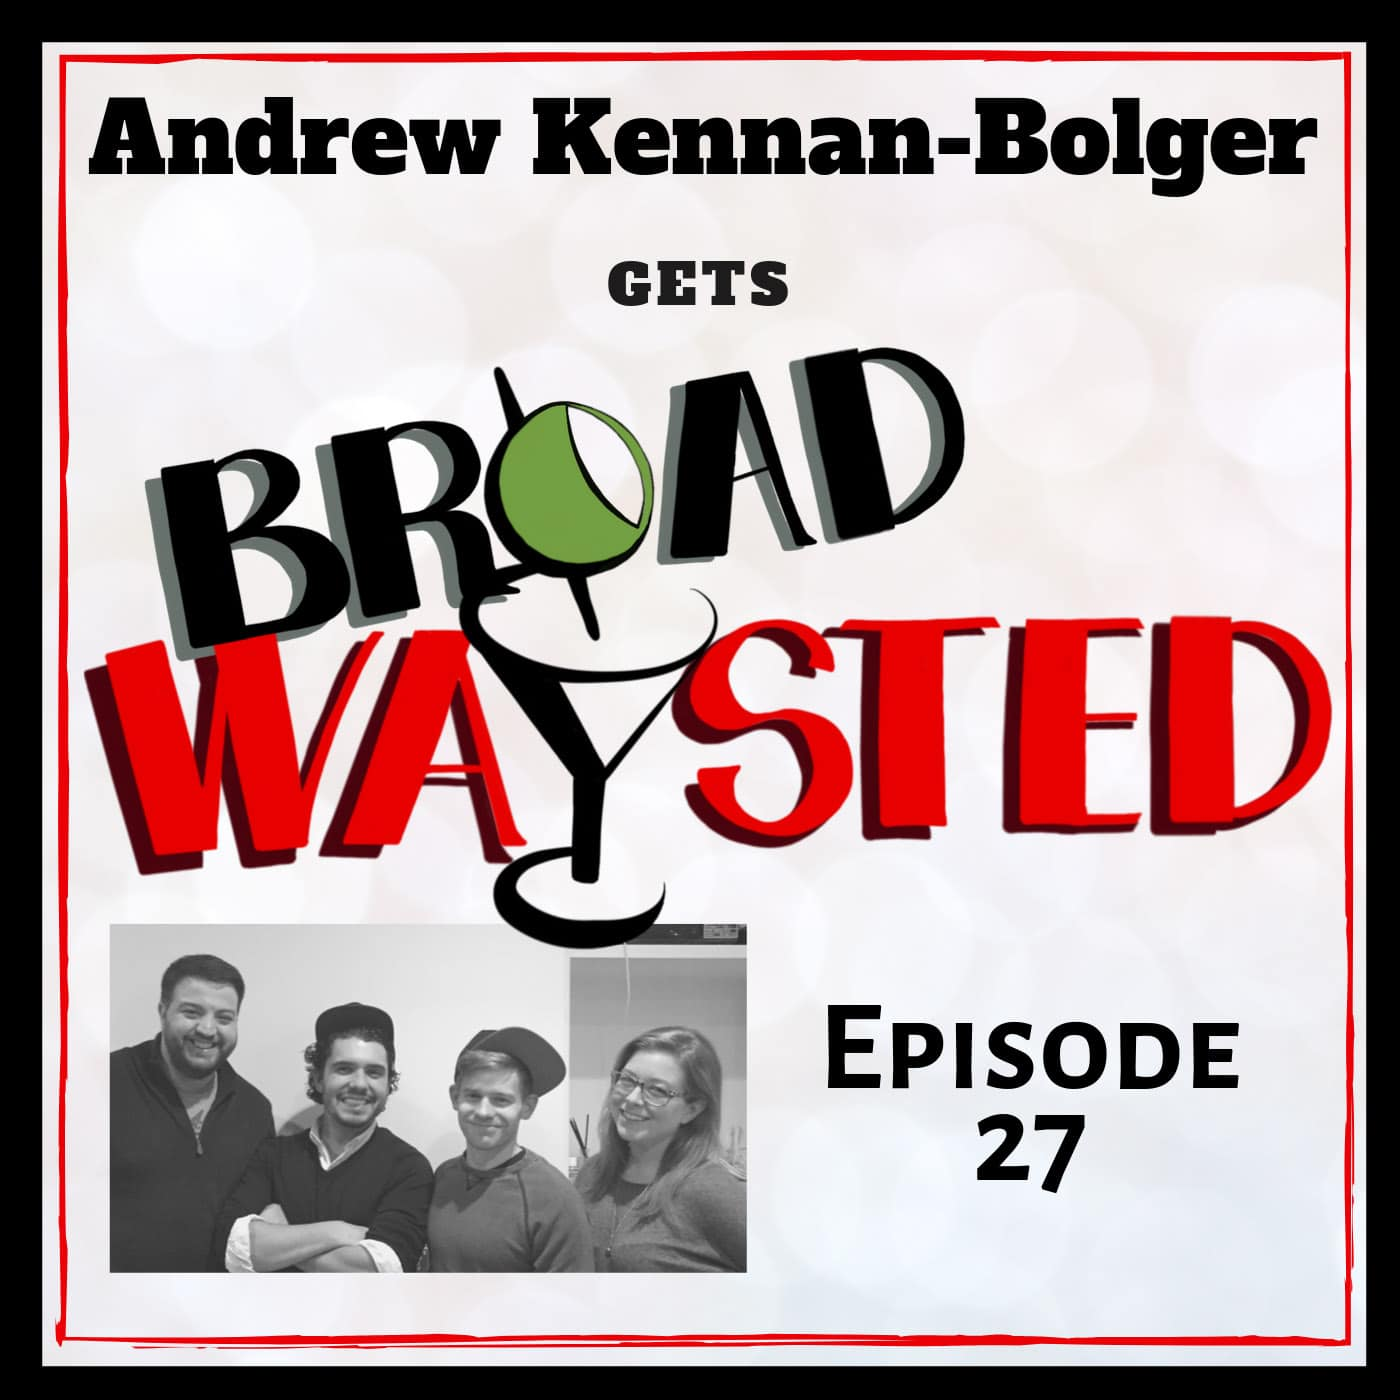 Broadwaysted Ep 27 Andrew Kennan-Bolger